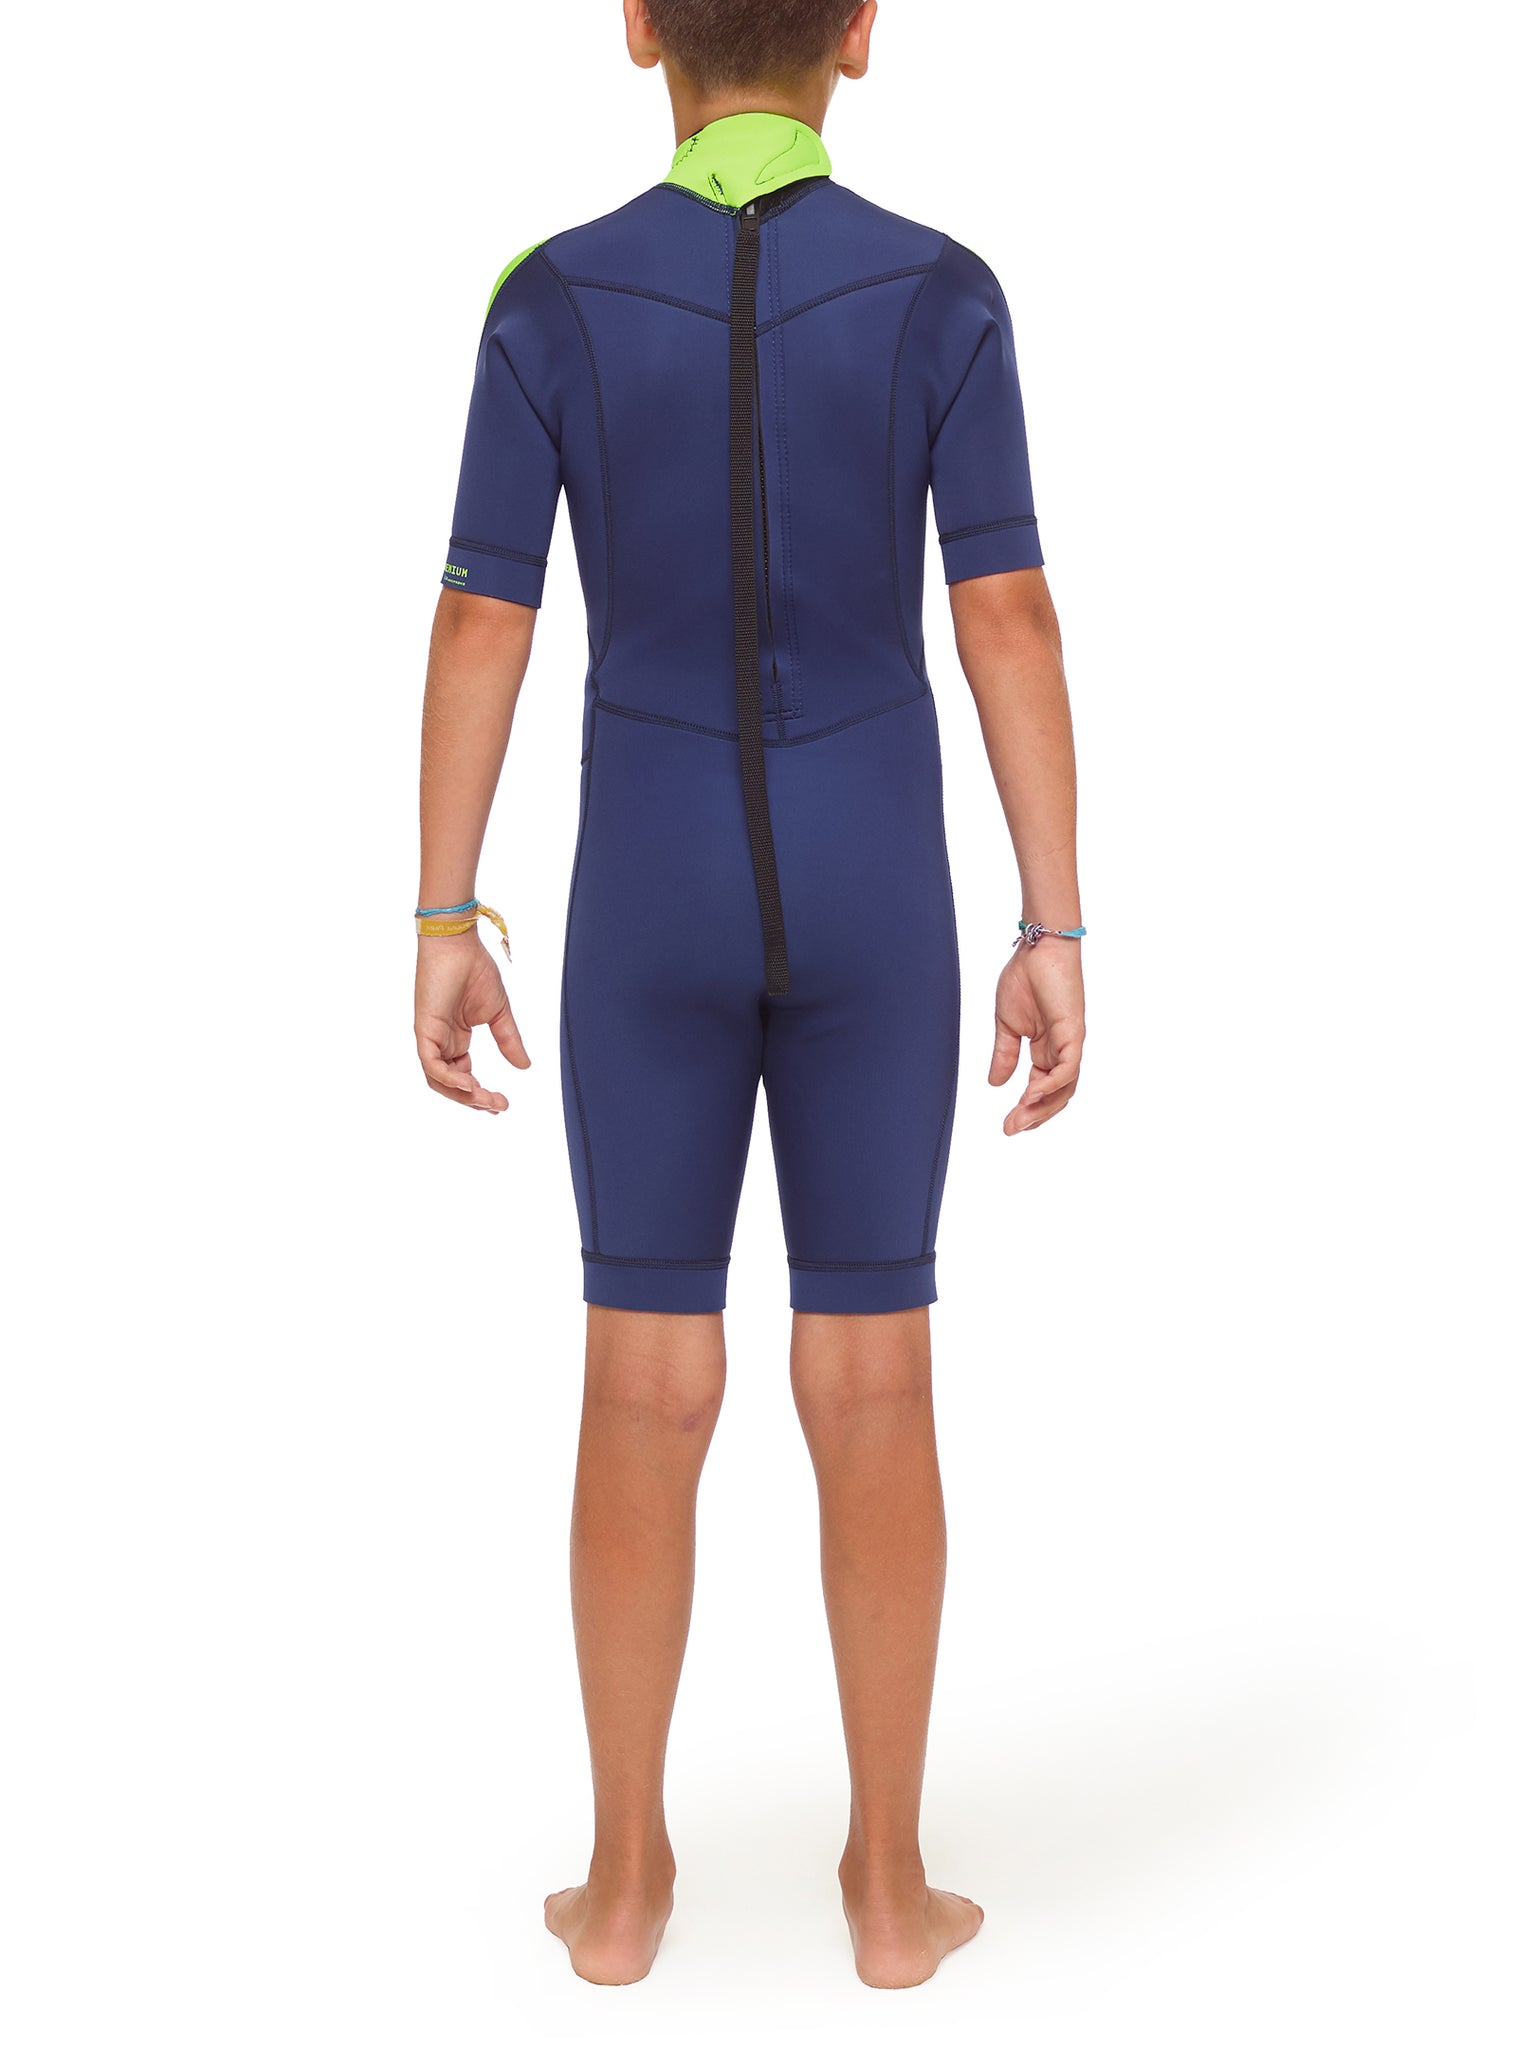 Wetsuit Junior Premium 2/2 Back Zip Navy Blue